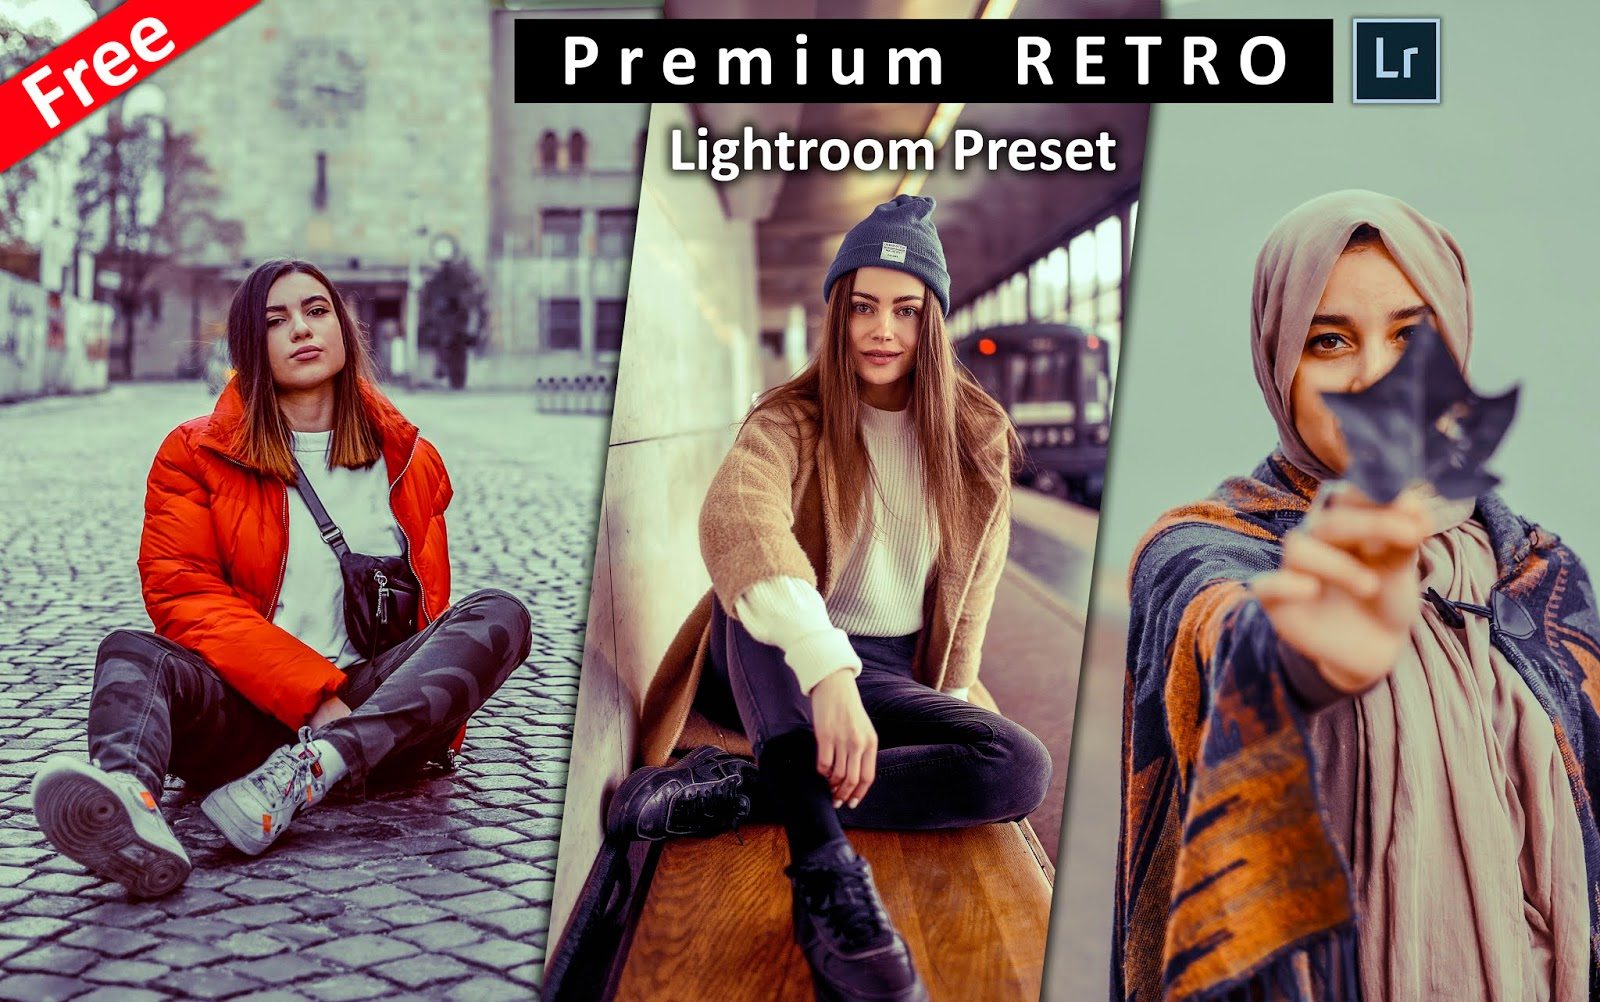 Download Premium RETRO Lightroom Preset for Free | How to Make Retro Effect in Lightroom